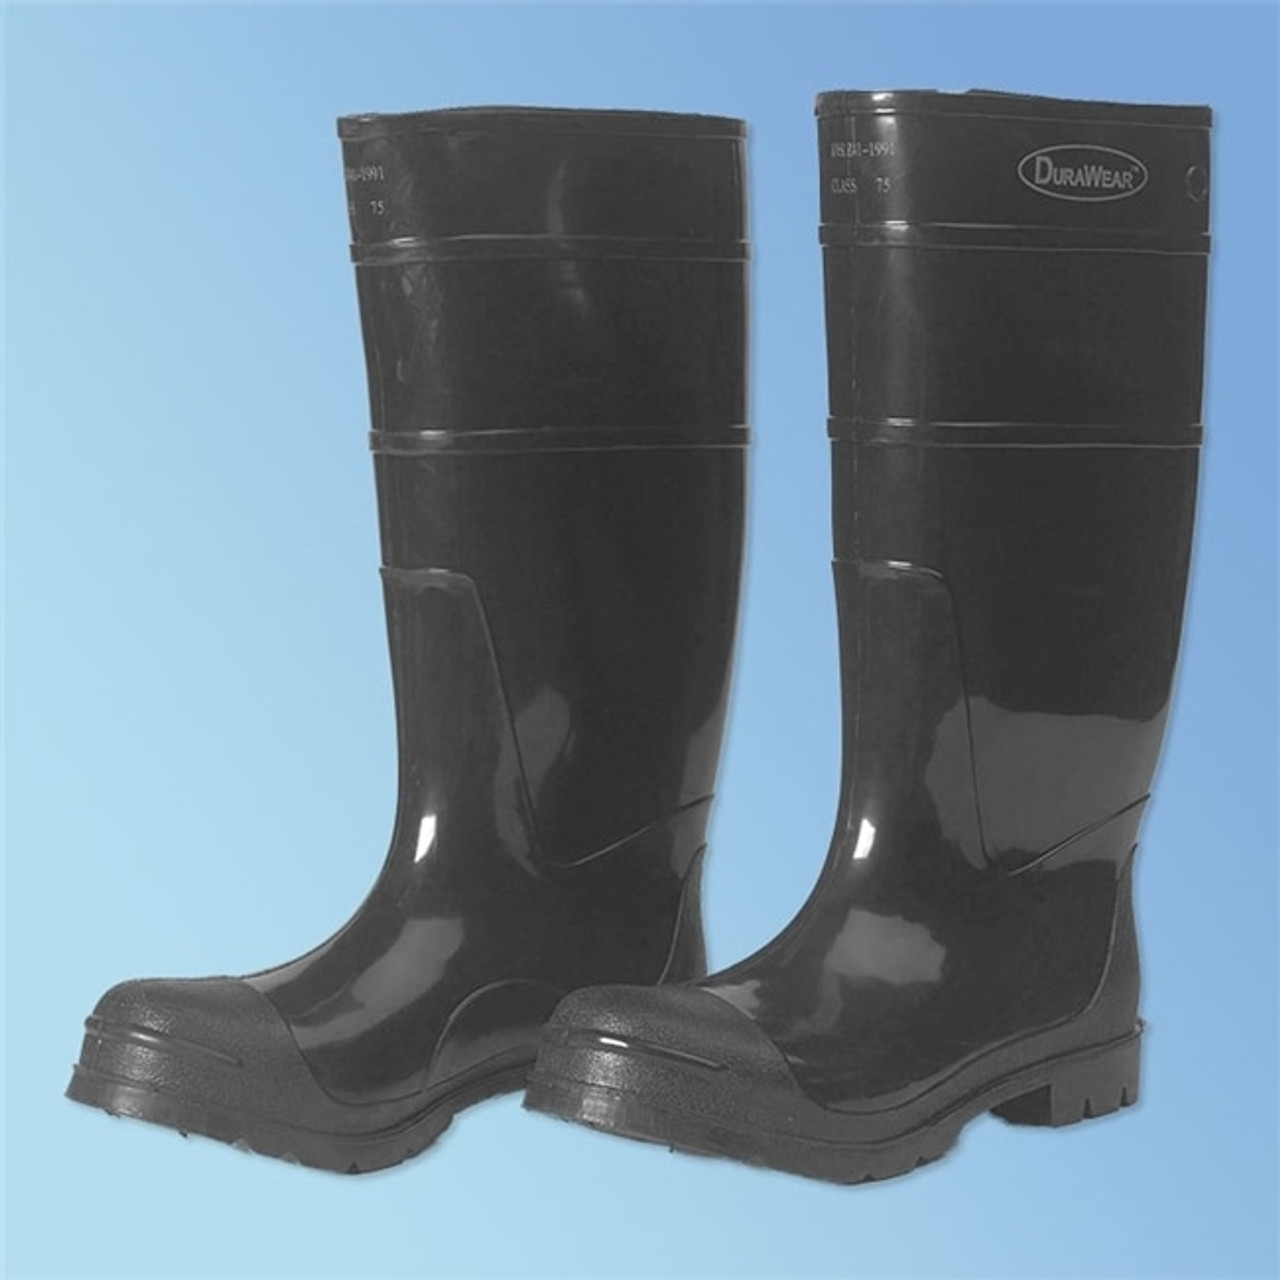 Food Processing Boots